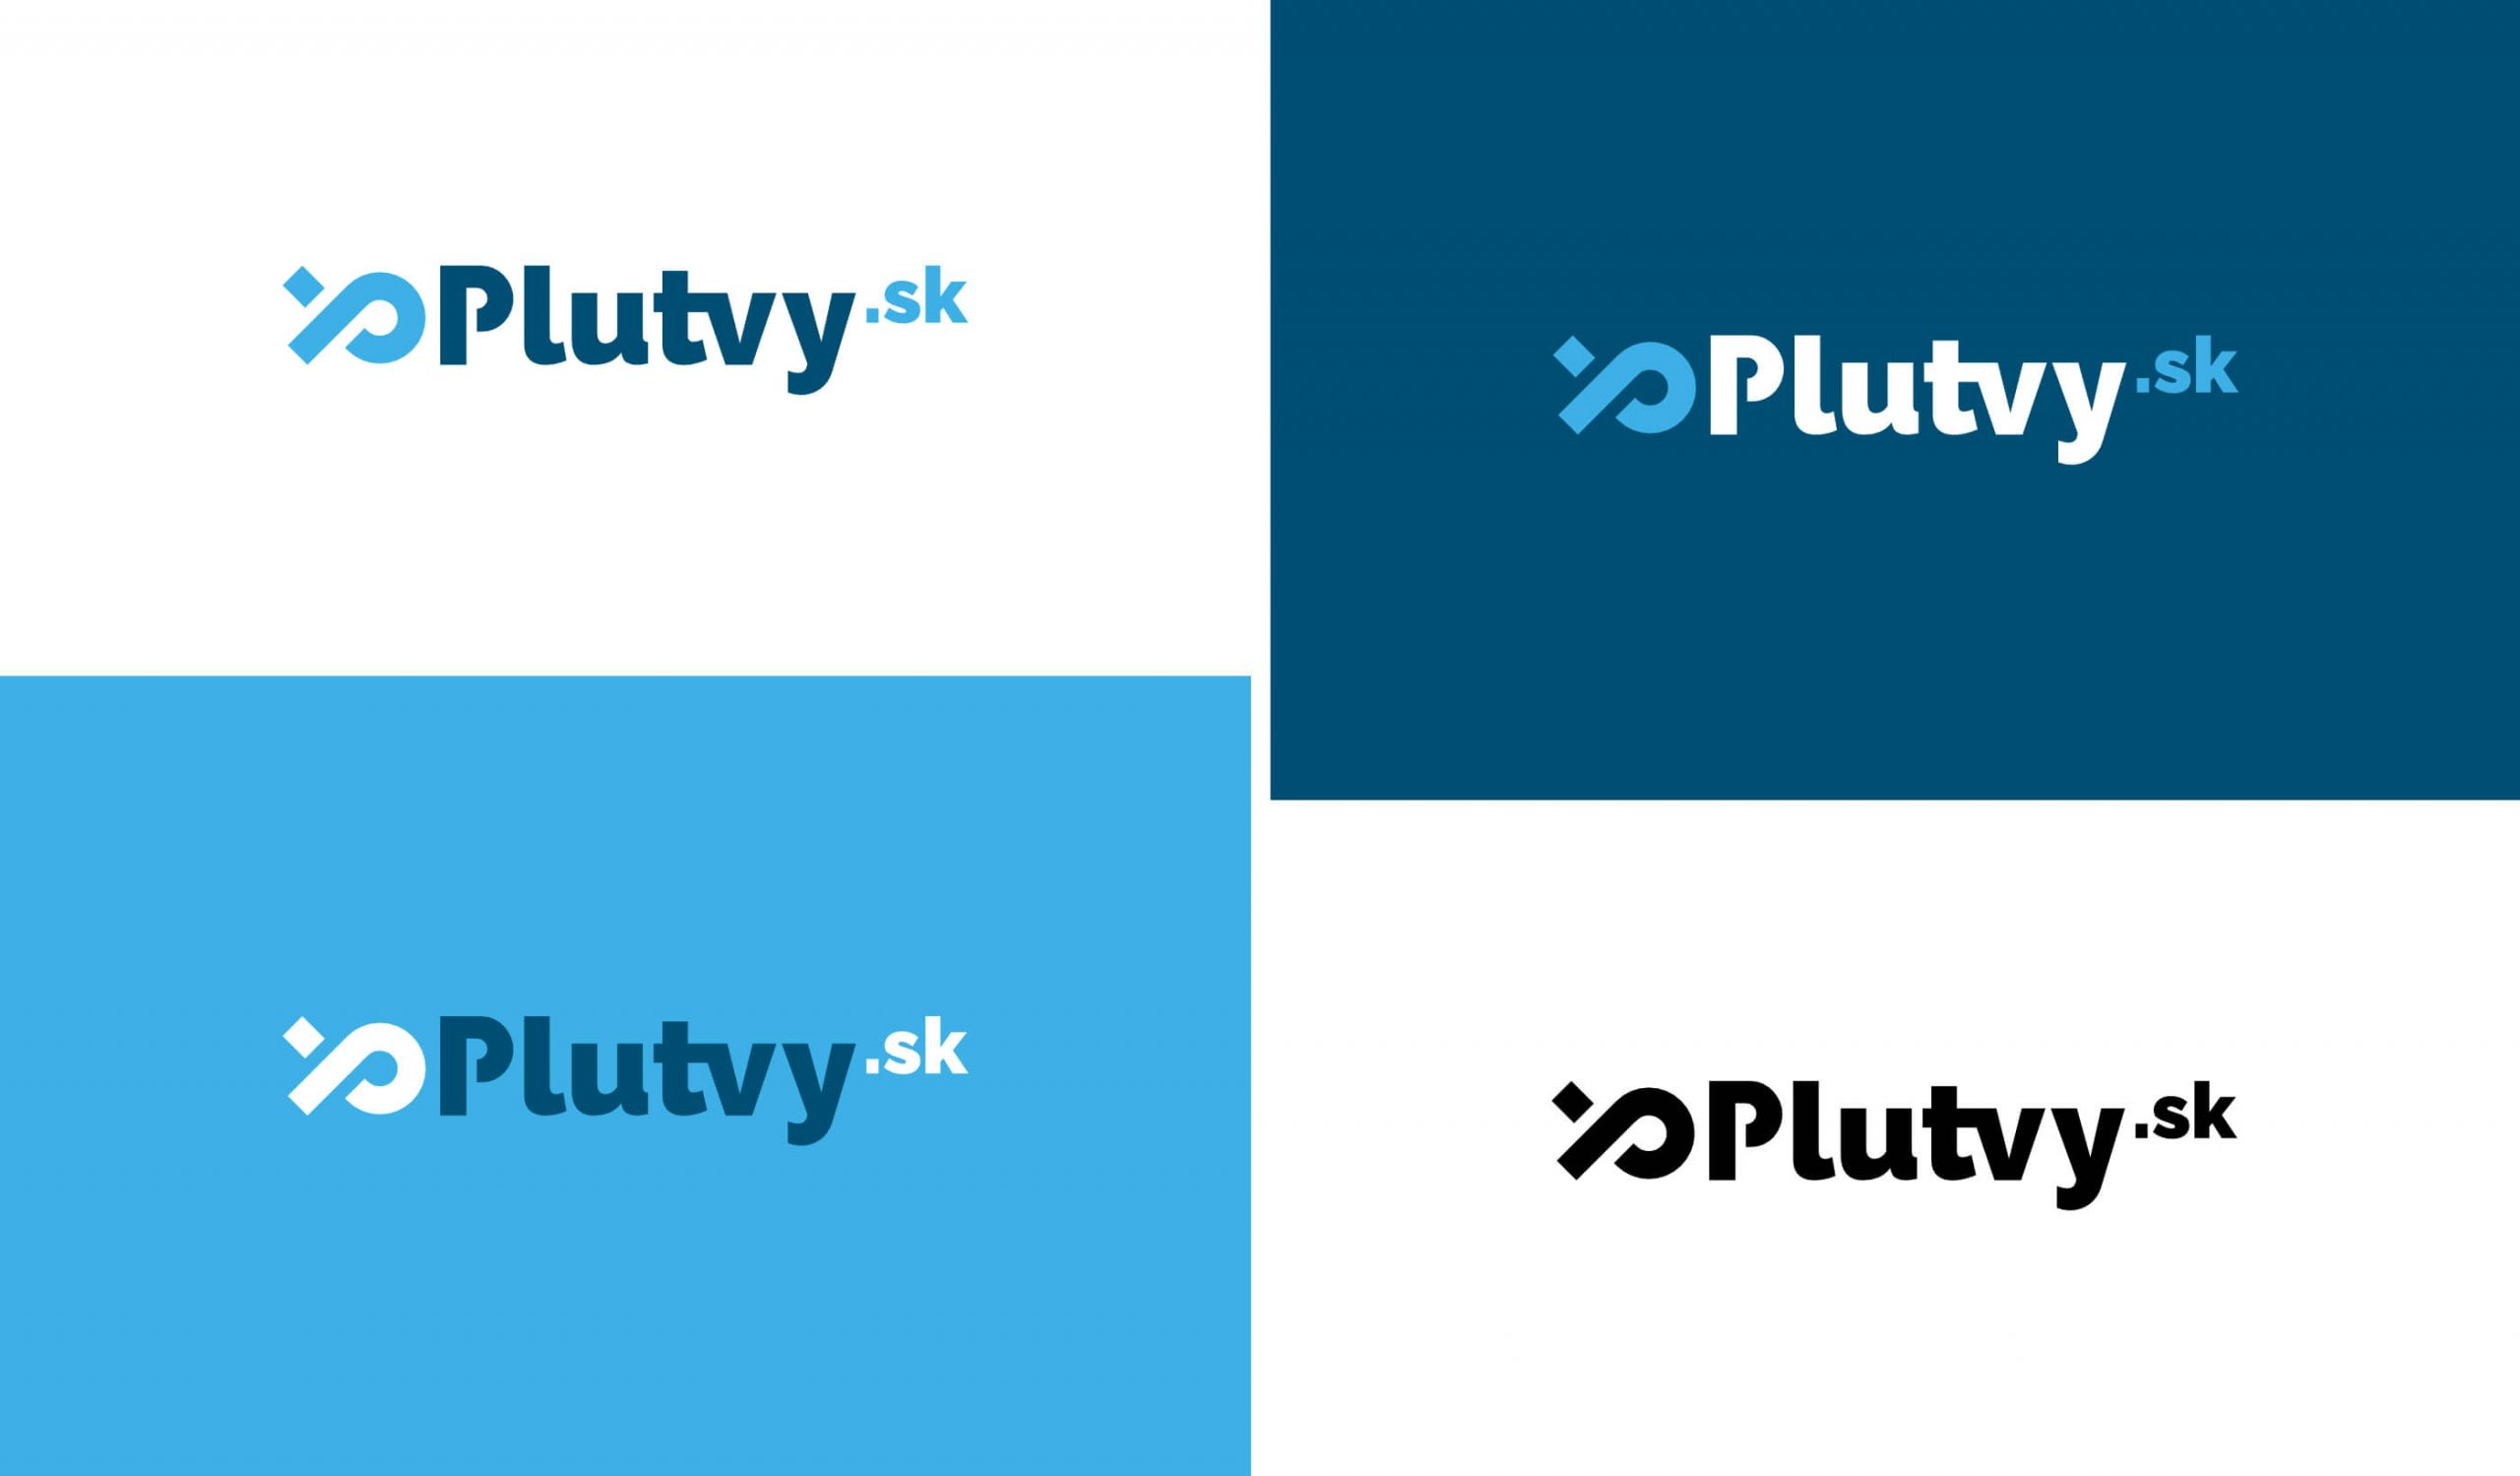 plutvy-sk final logo colour variations branding by michael maleek djibril